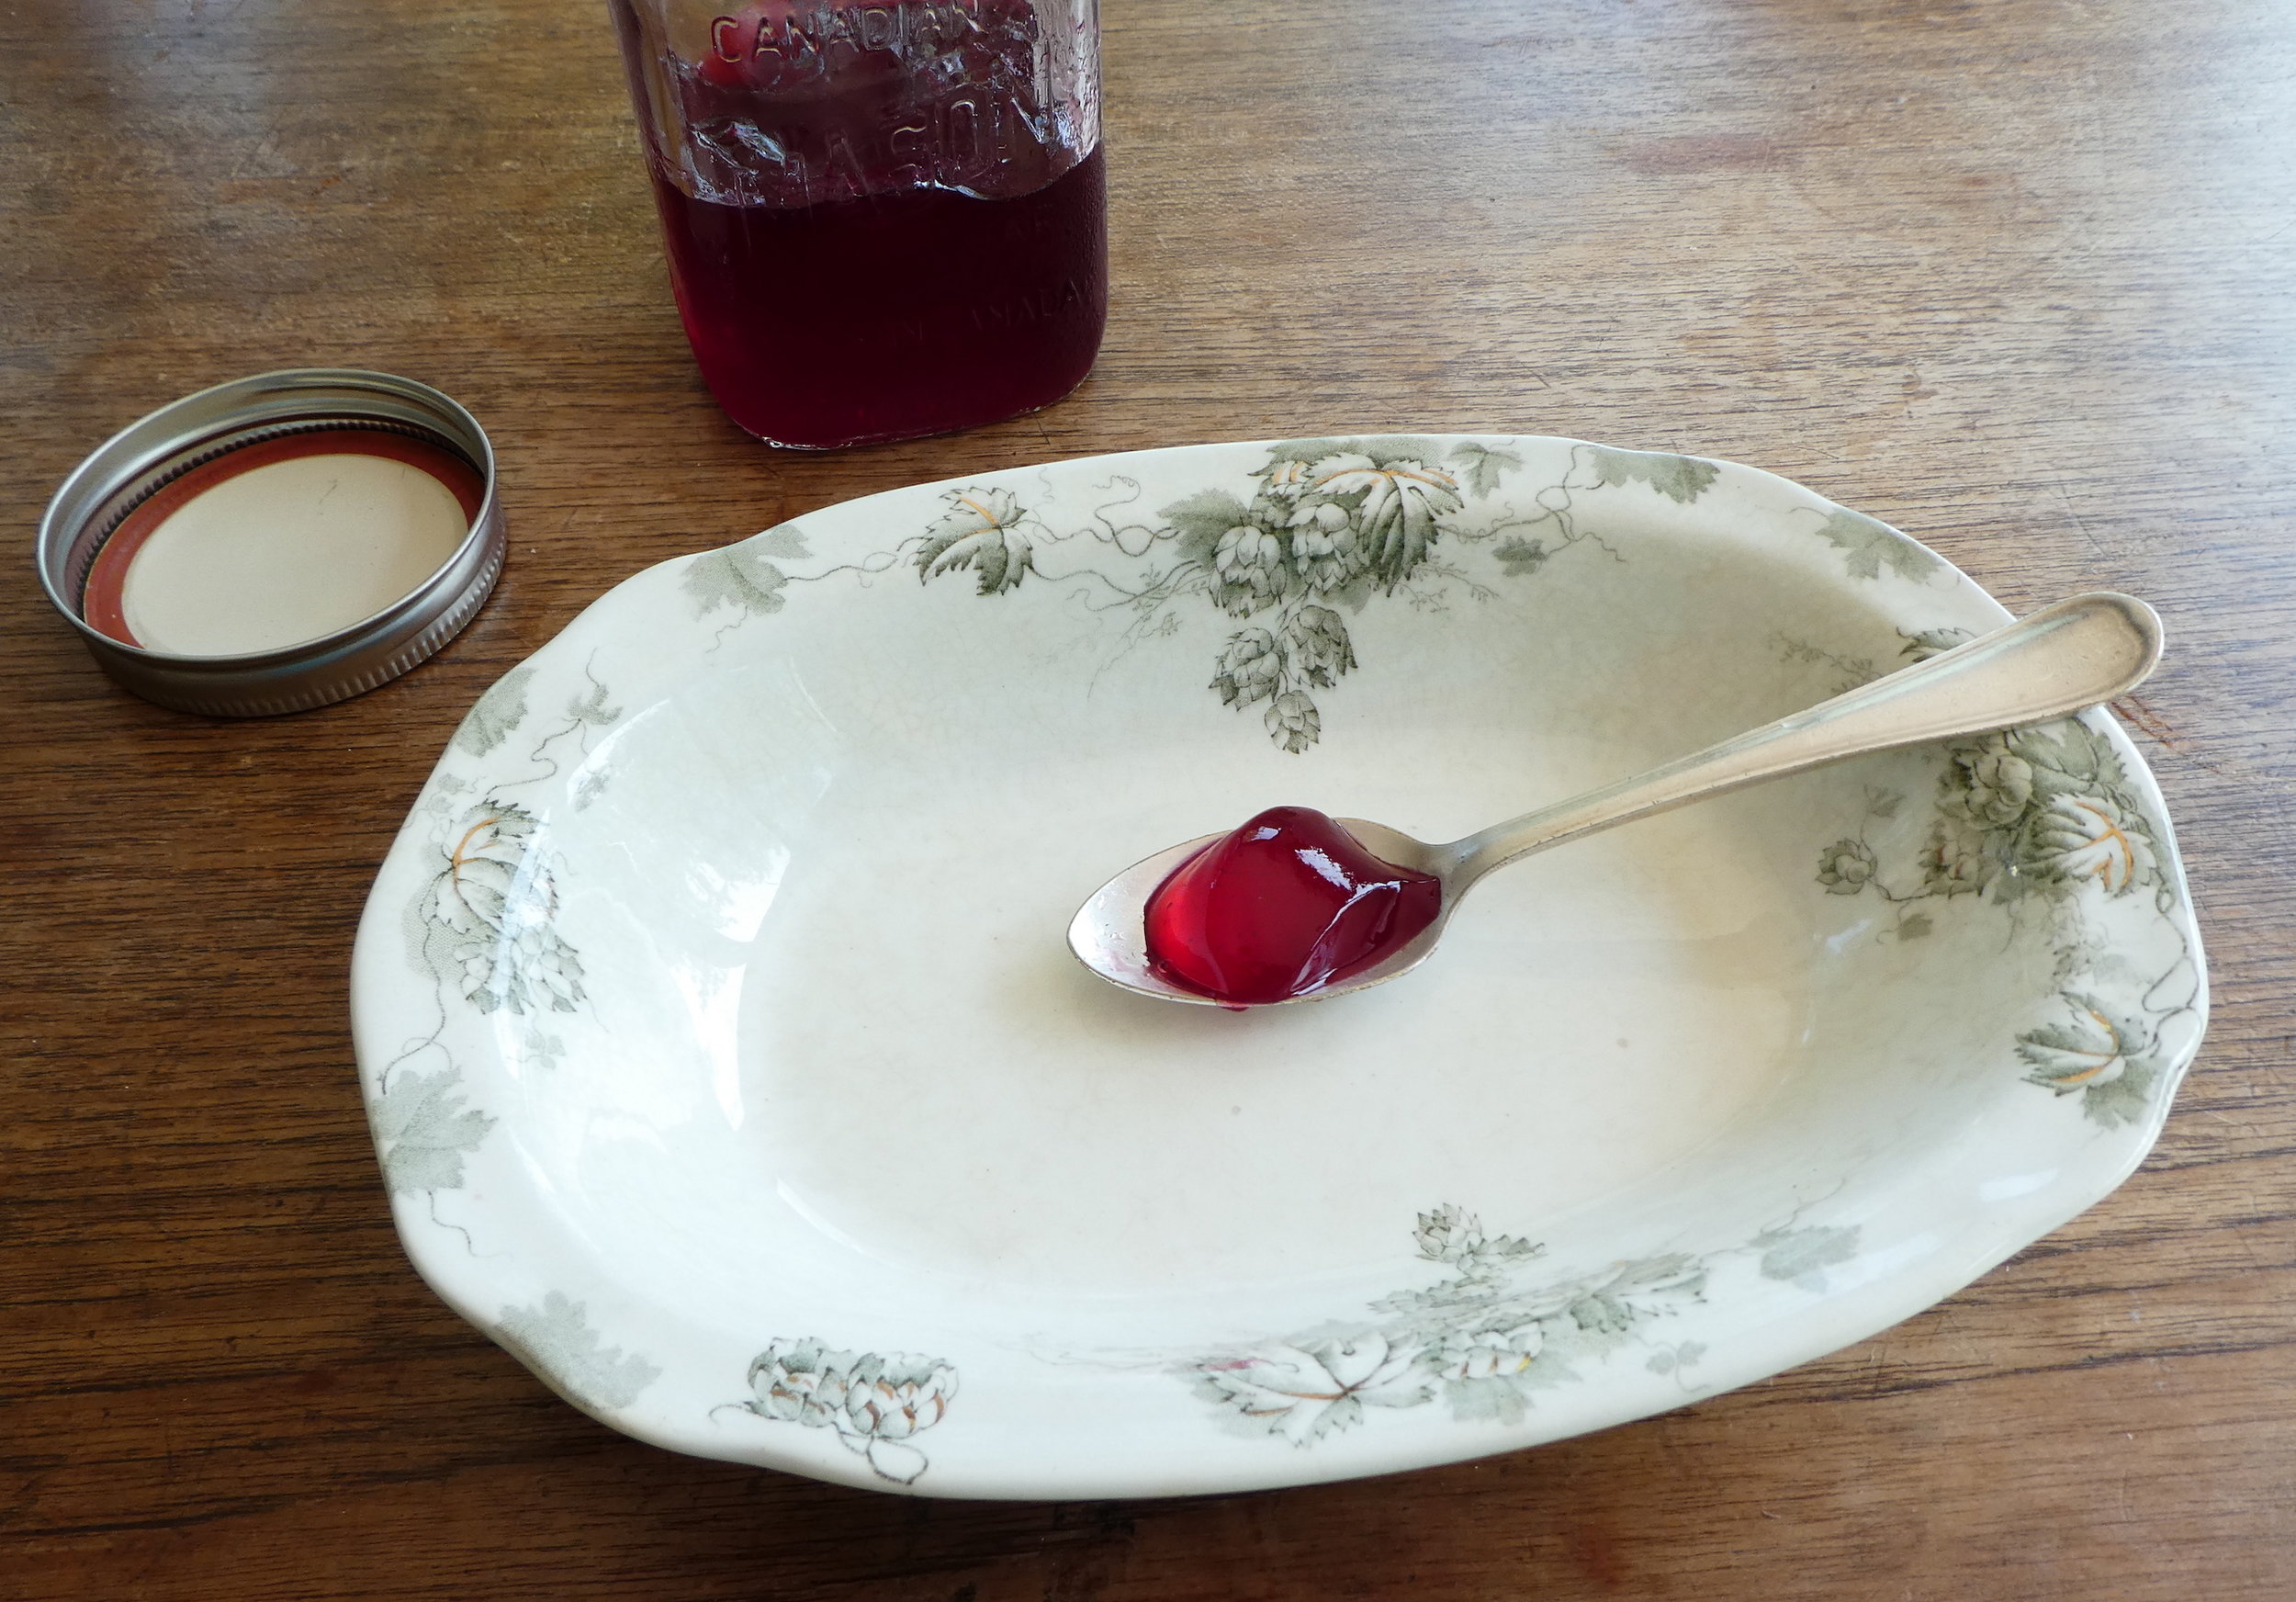 fig. b: still life with quivering jelly